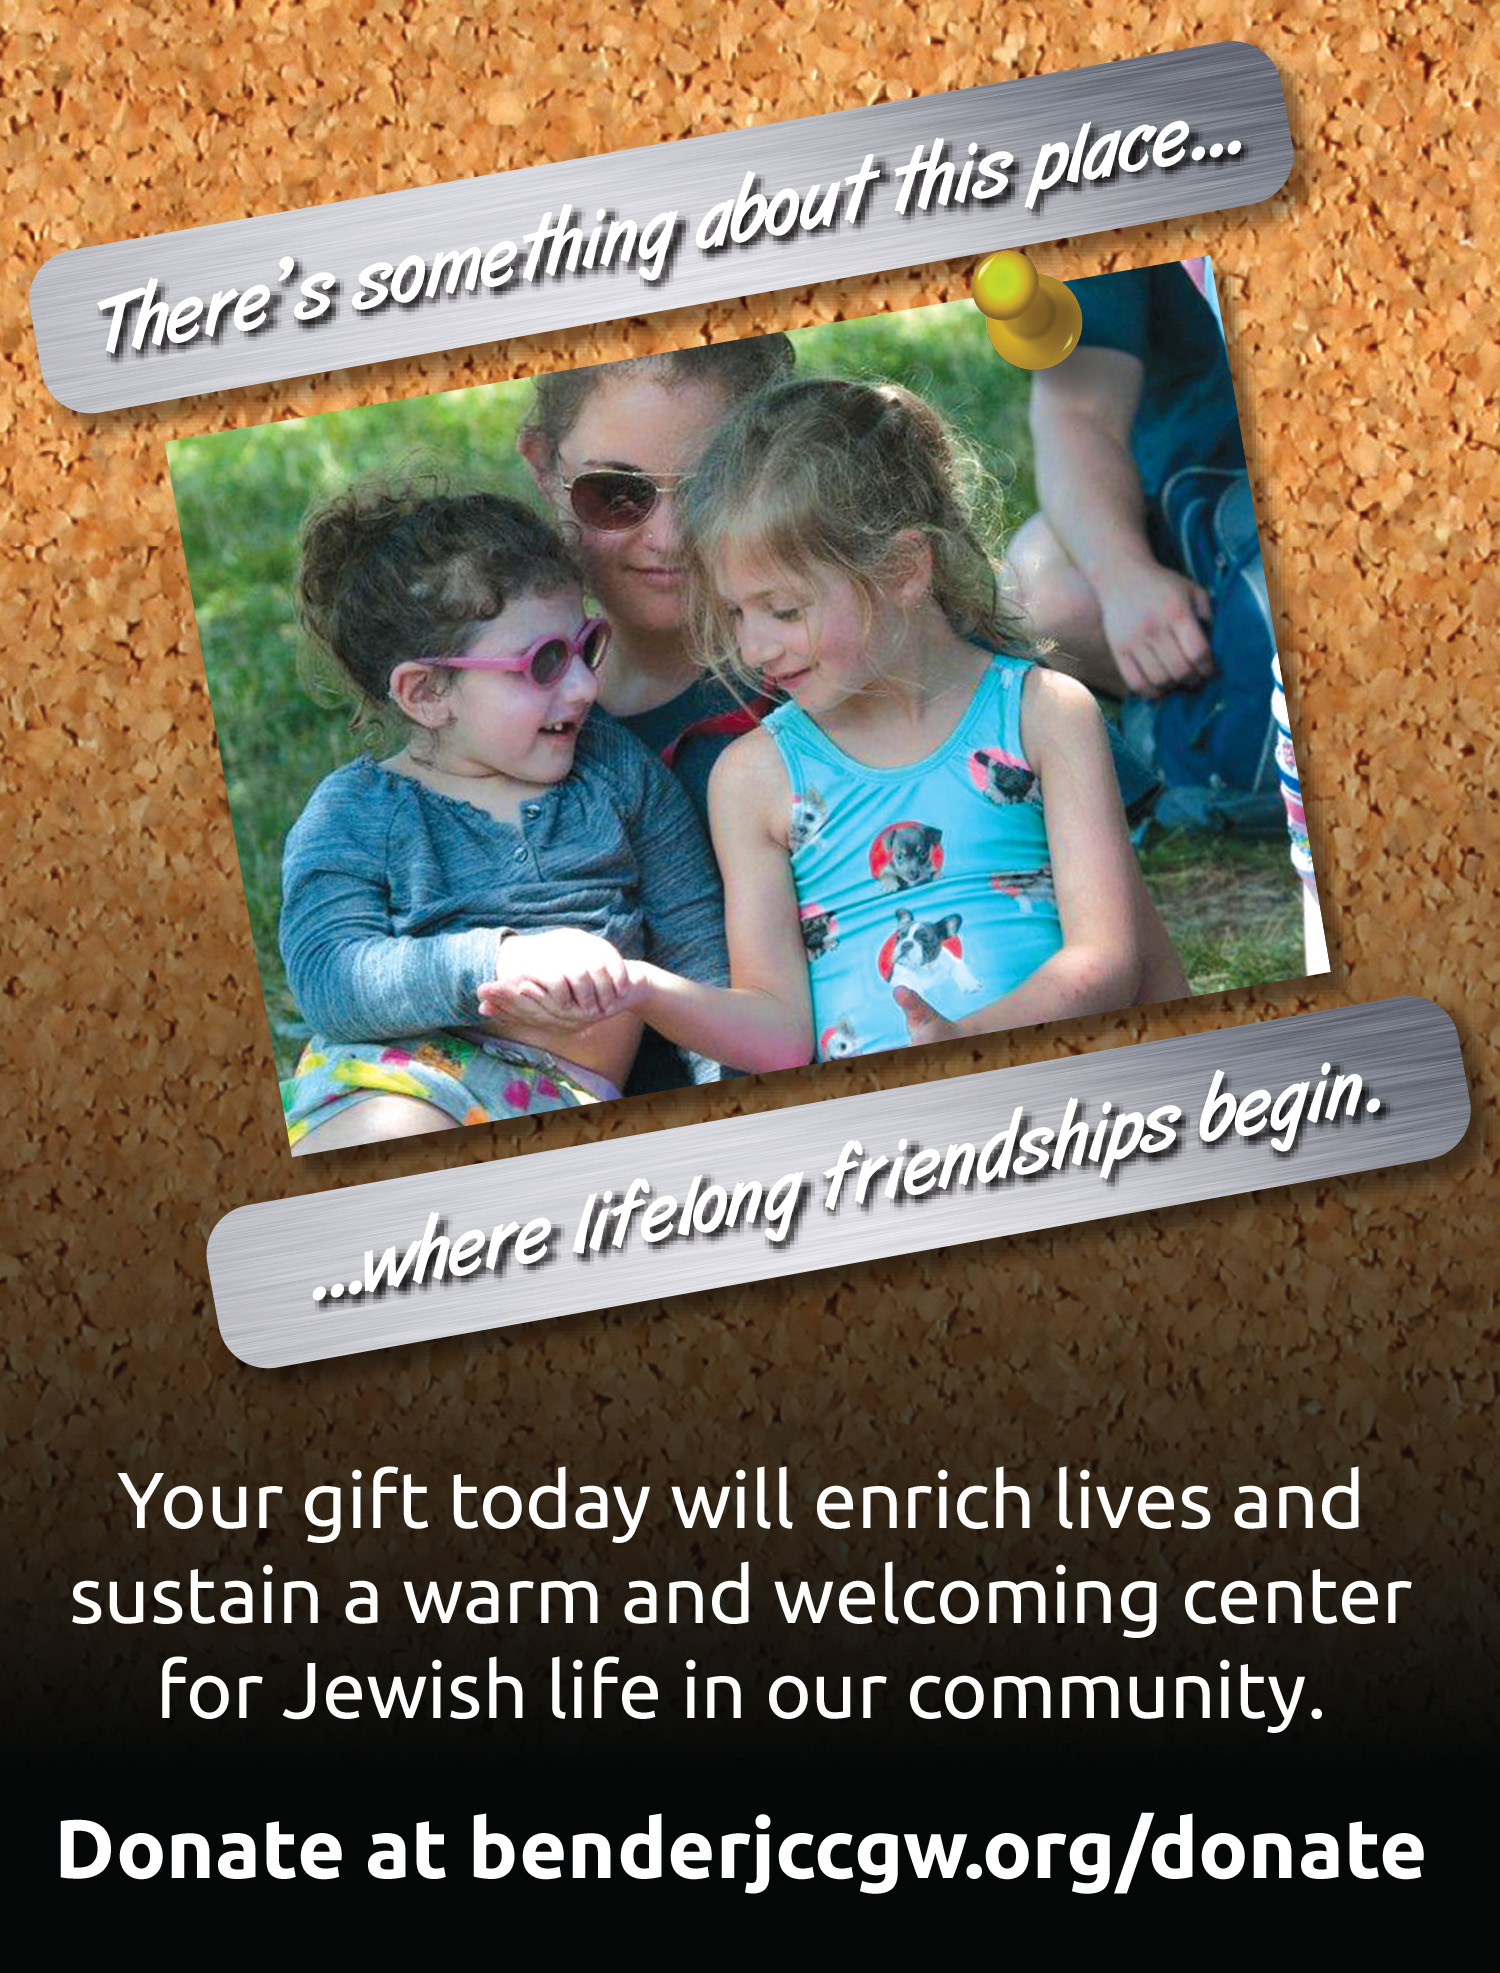 There's something about this place...where lifelong friendships begin. Your gift today will enrich lives and sustain a warm and welcoming center for Jewish life in our community. Donate at benderjccgw.org/donate.